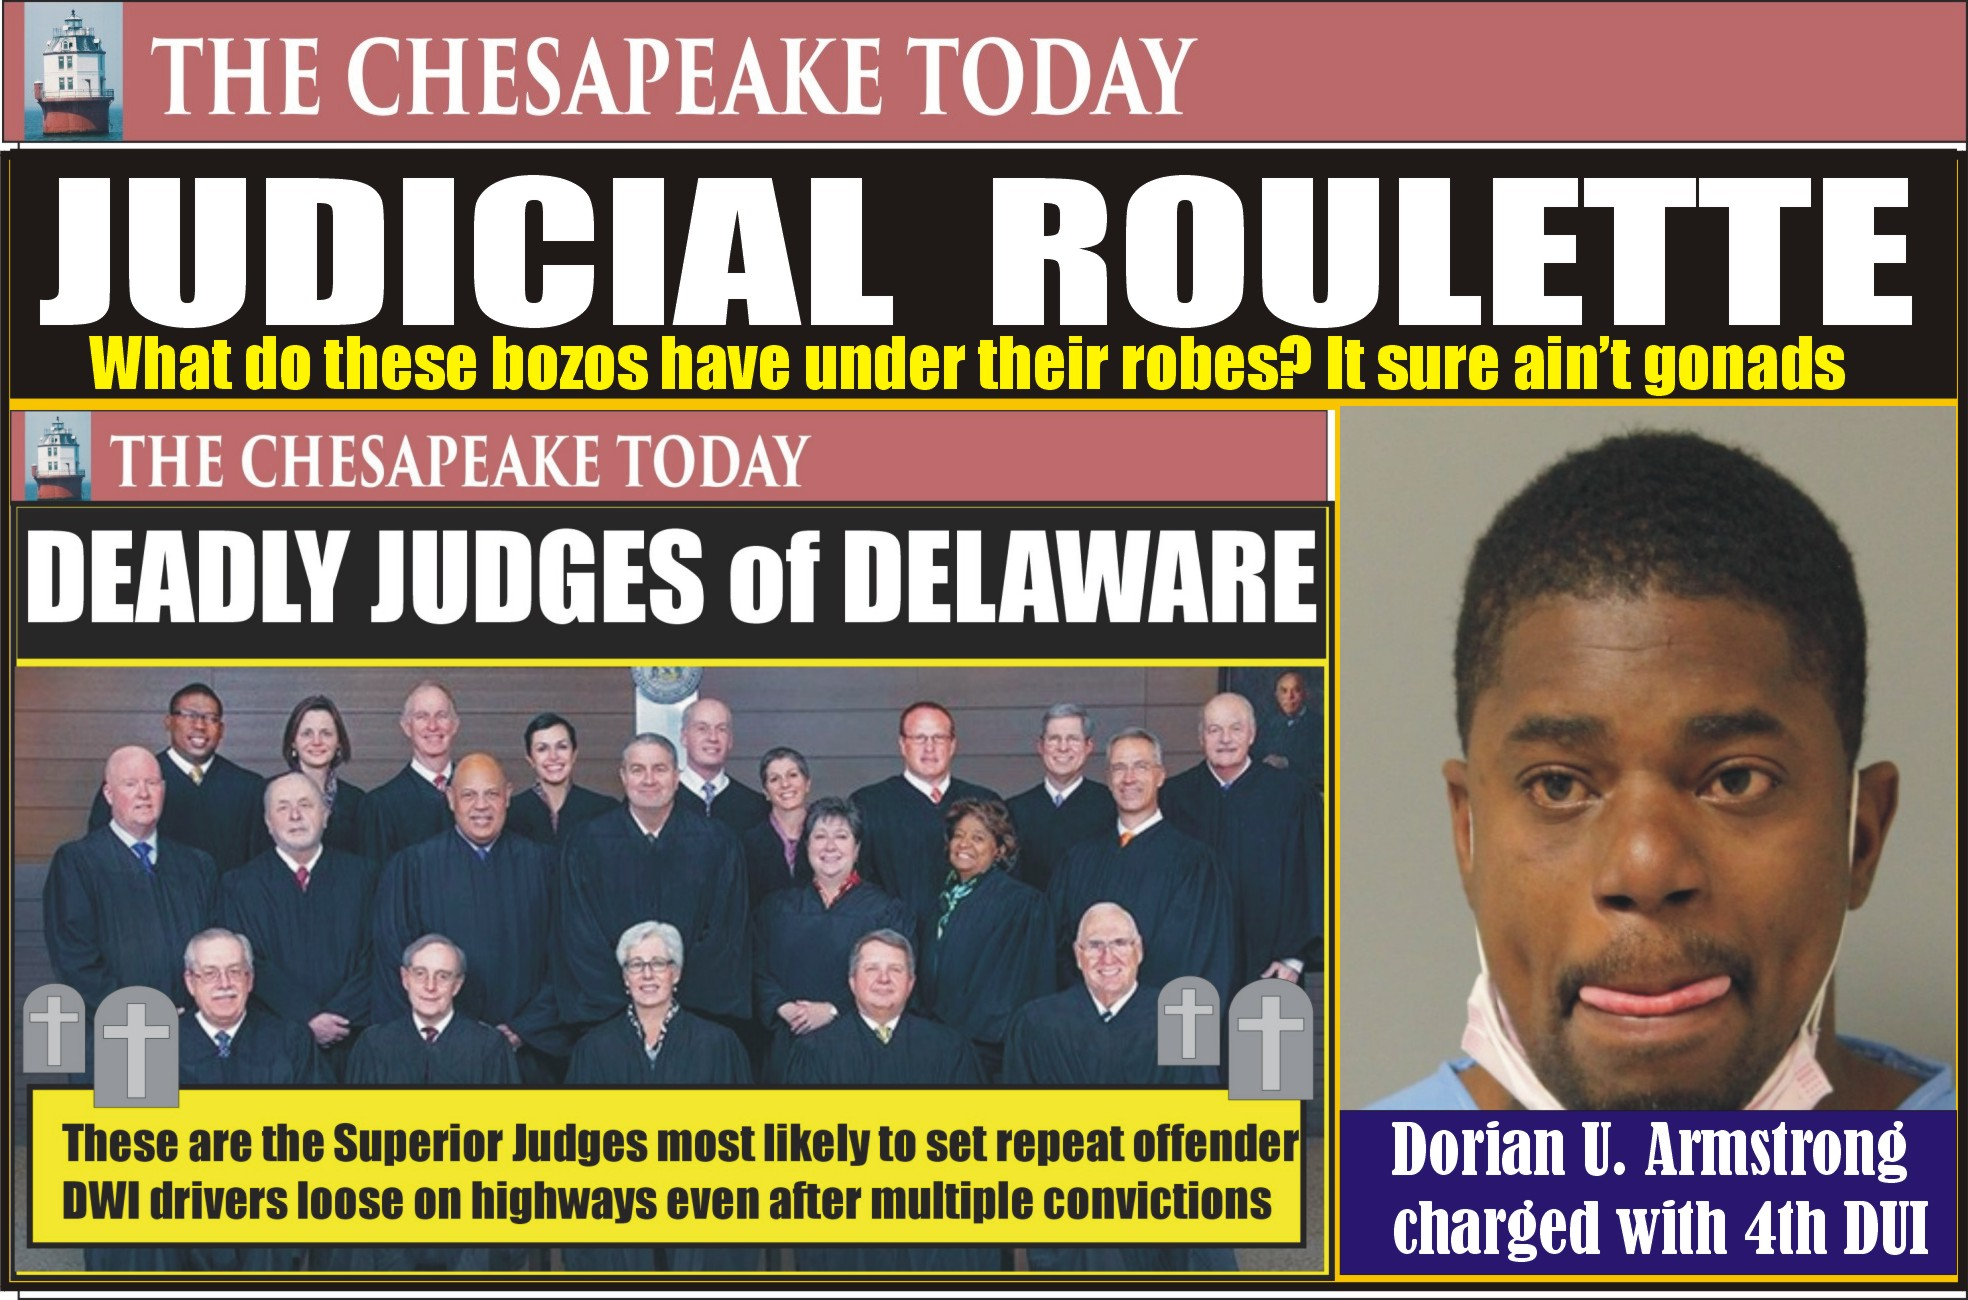 DWI HIT PARADE: Dorian Armstrong nabbed when fleeing from a wrecked stolen truck, awarded 4th DUI – when will Judges of Delaware stop playing dress-up with their robes and lock up repeat offenders?